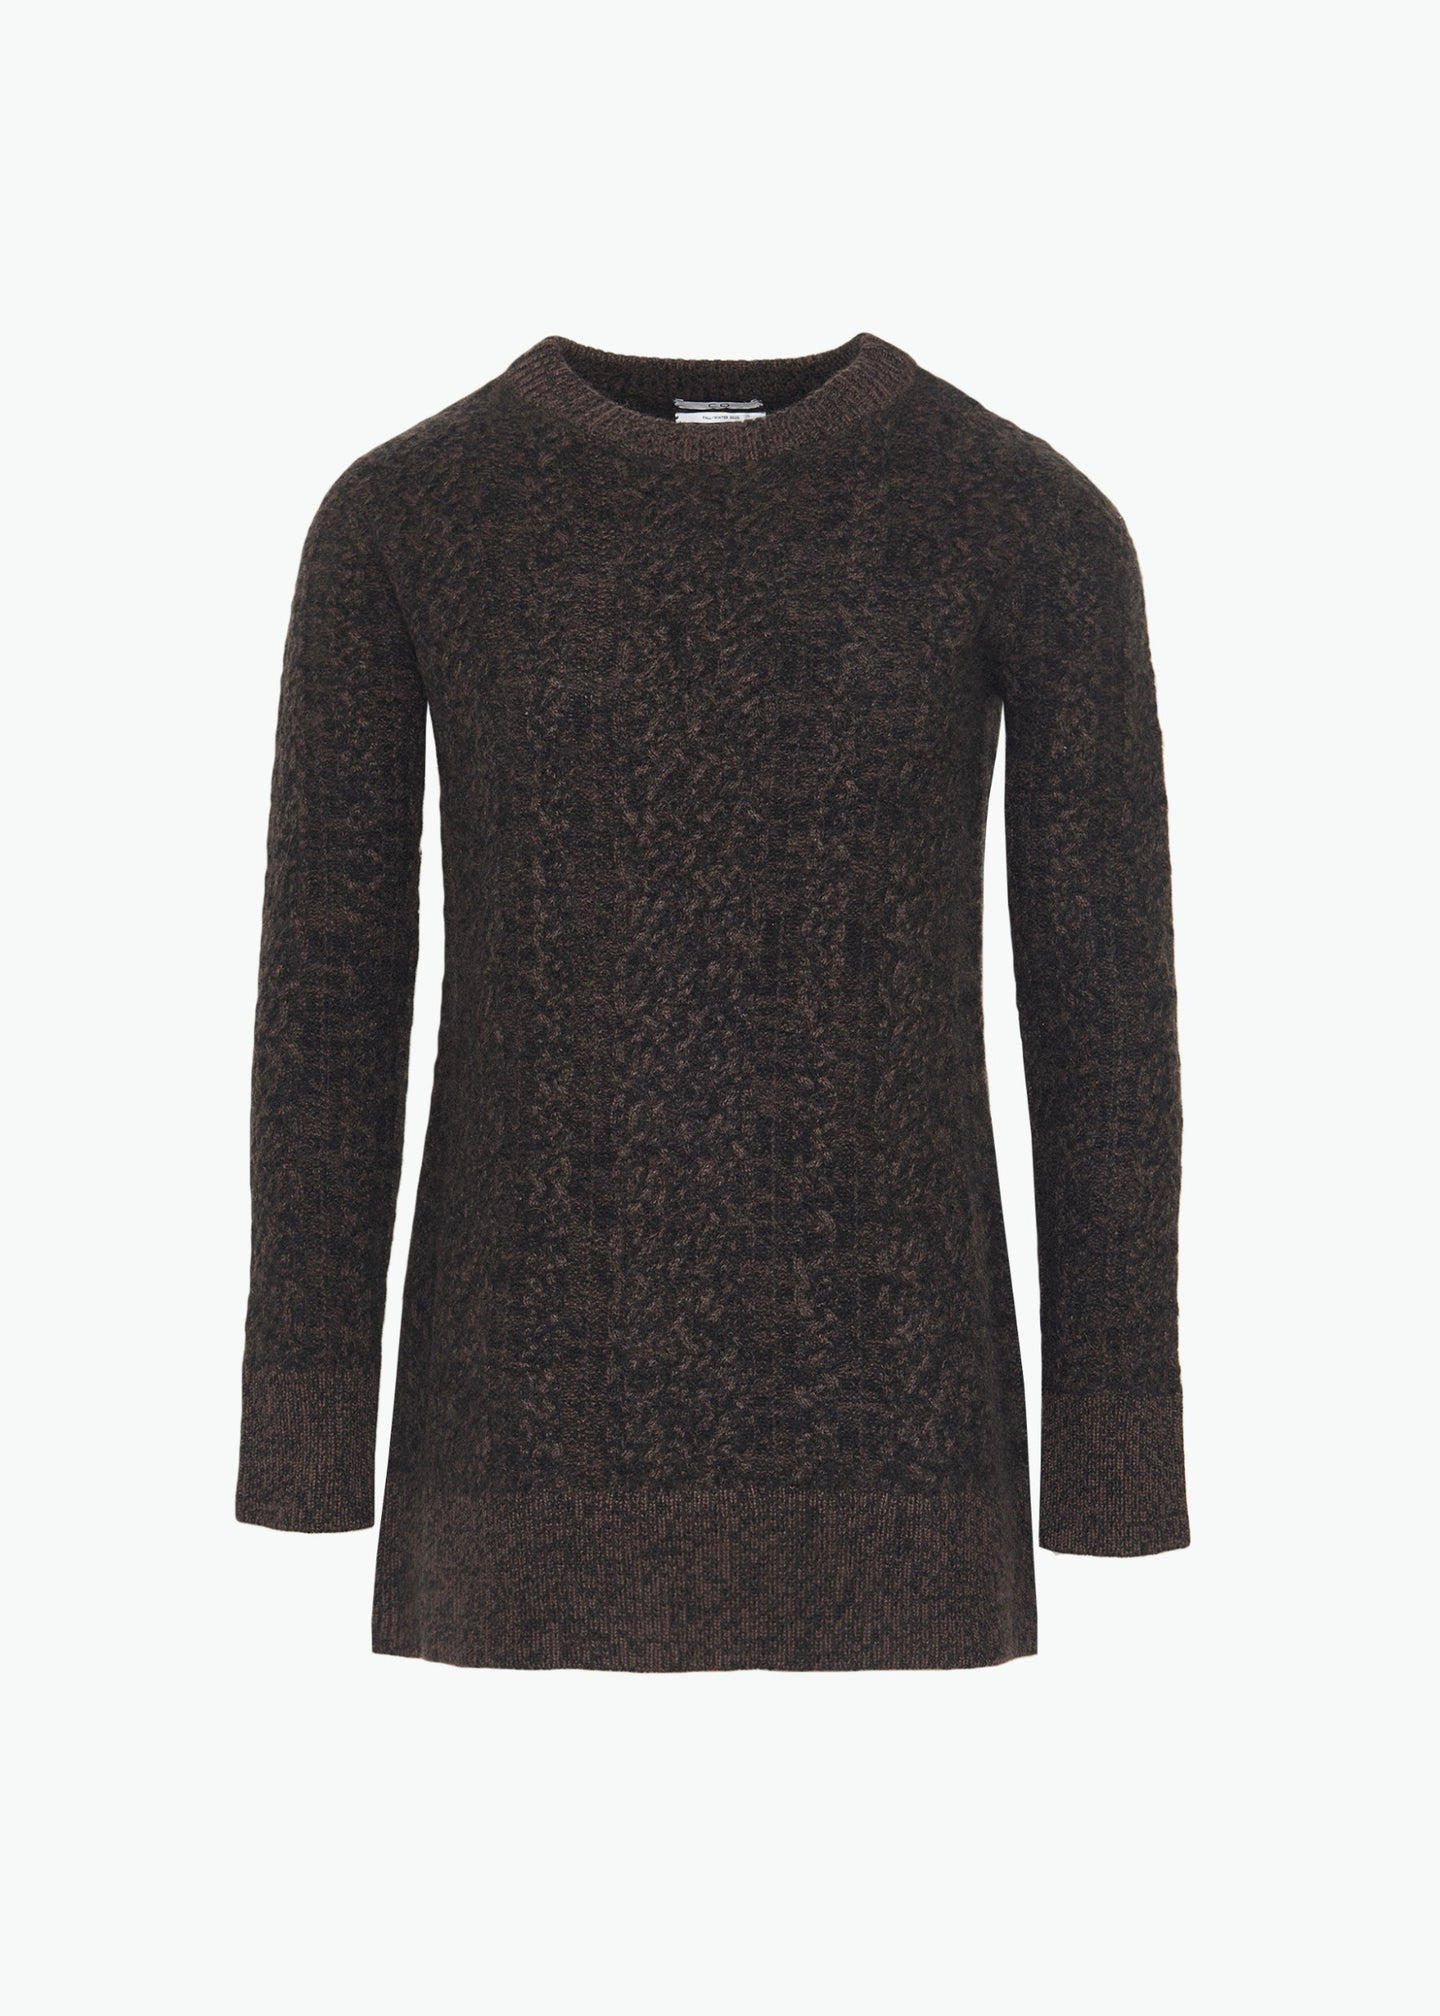 Cable Knit Sweater in Cashmere - Umber Melange - CO